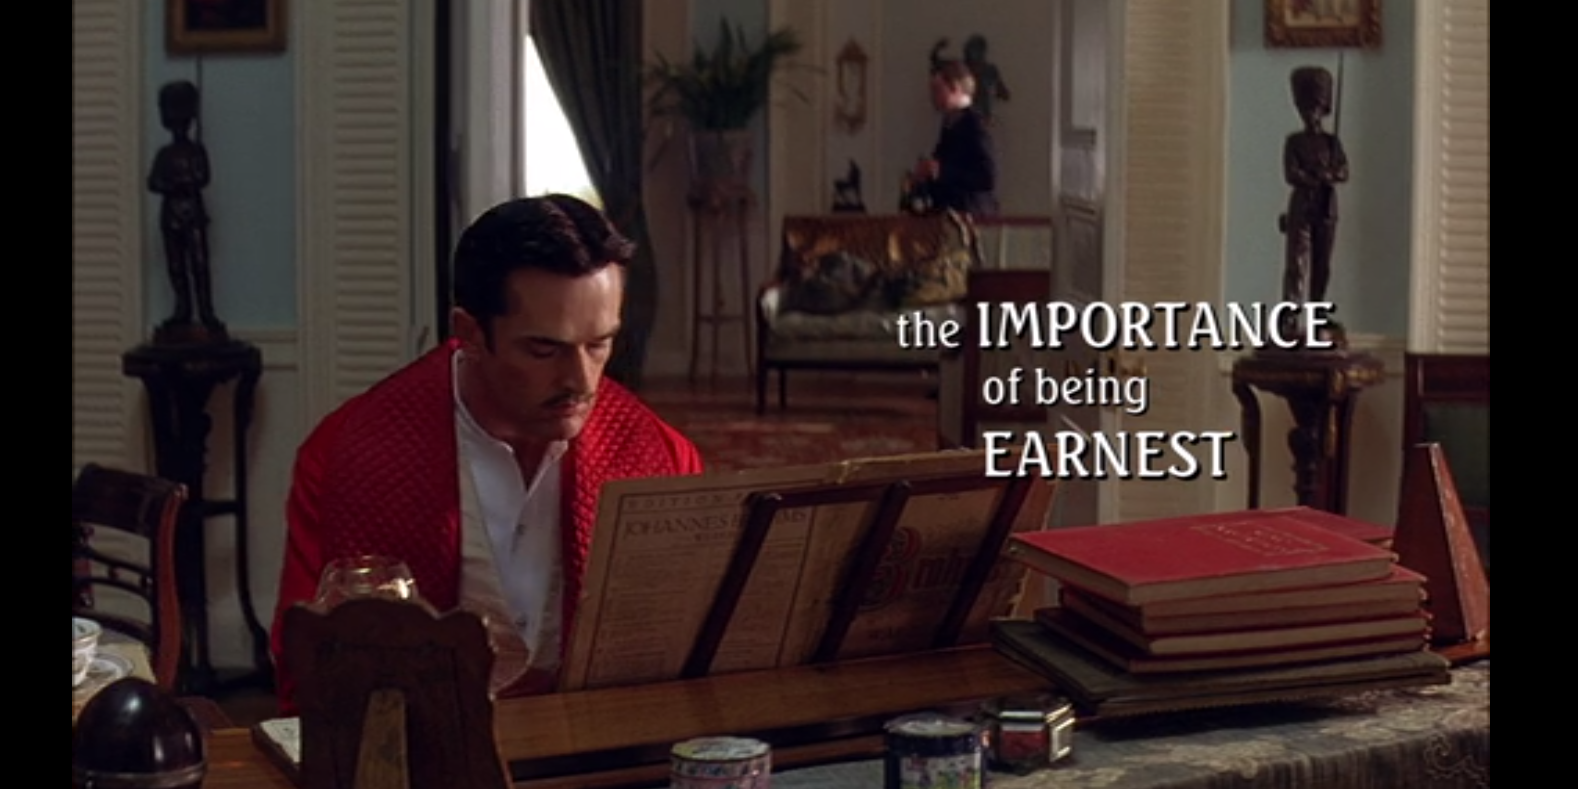 the importance of being earnest wilde s It's oscar wilde's beloved masterpiece, and it's more outrageous than it's ever been before directed by matthew cox, wilde's exquisitely scandalous.